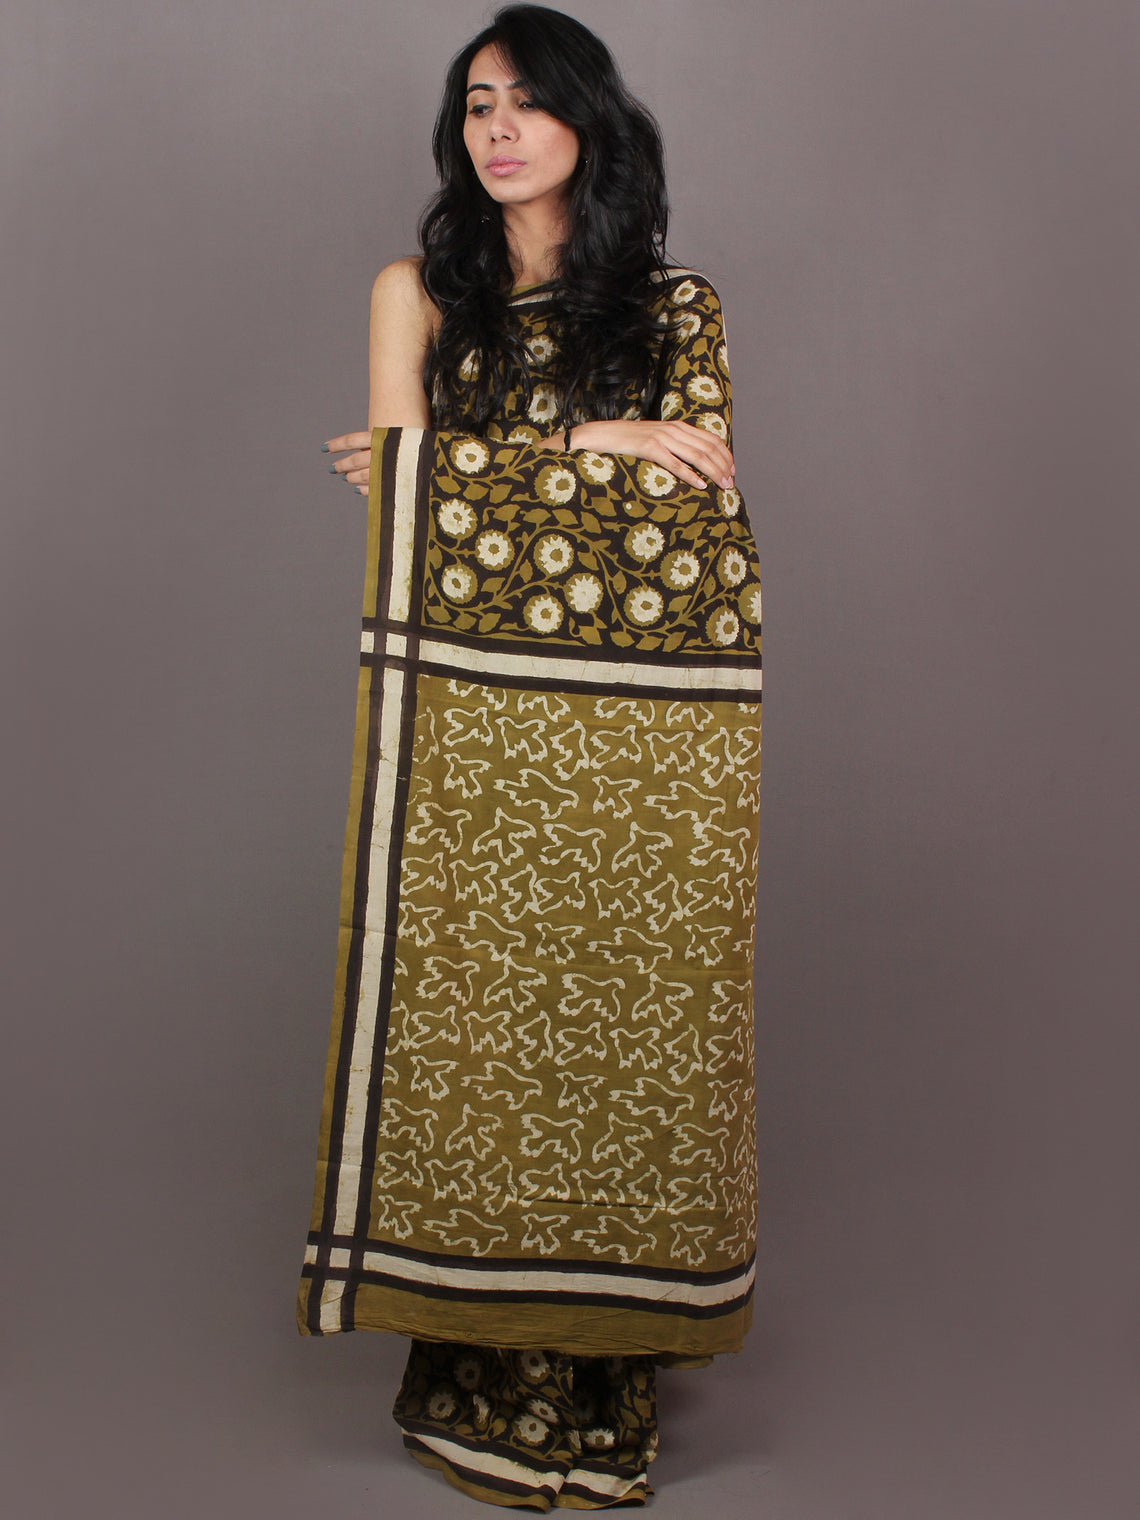 Asparagus Green White Brown Bagru Dabu Hand Block Printed in Cotton Mul Saree - S03170890